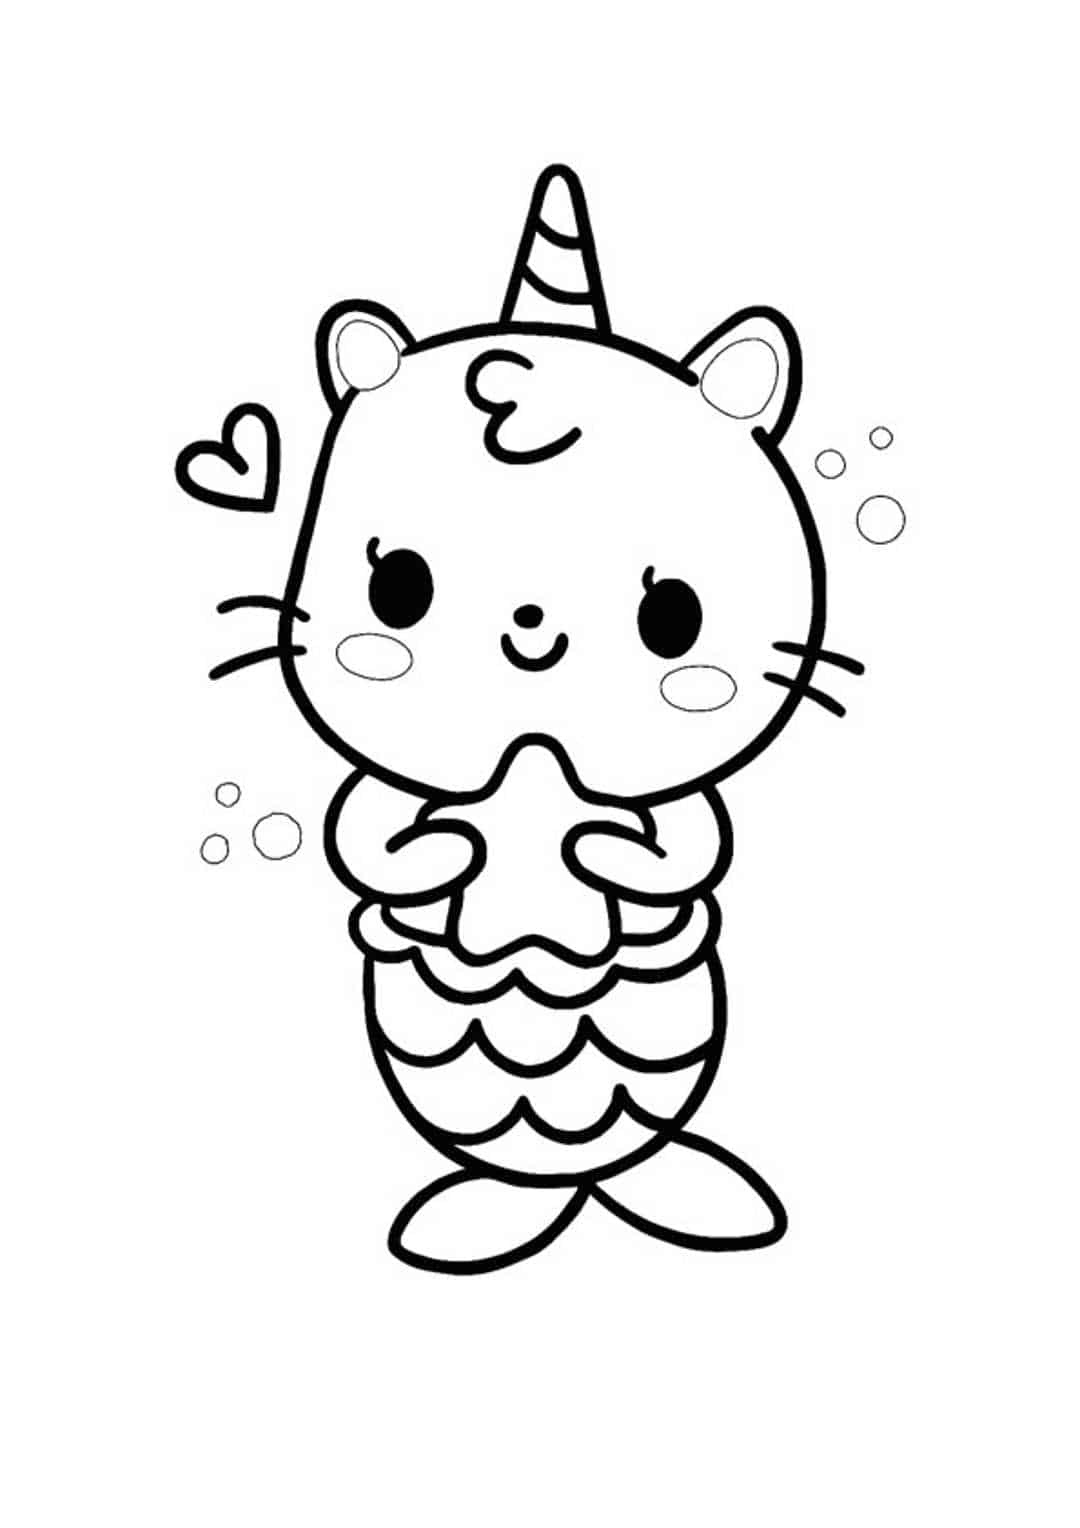 adorable unicorn mermaid coloring pages cute unicorn mermaid digi stamp cup90957770151 adorable mermaid pages coloring unicorn